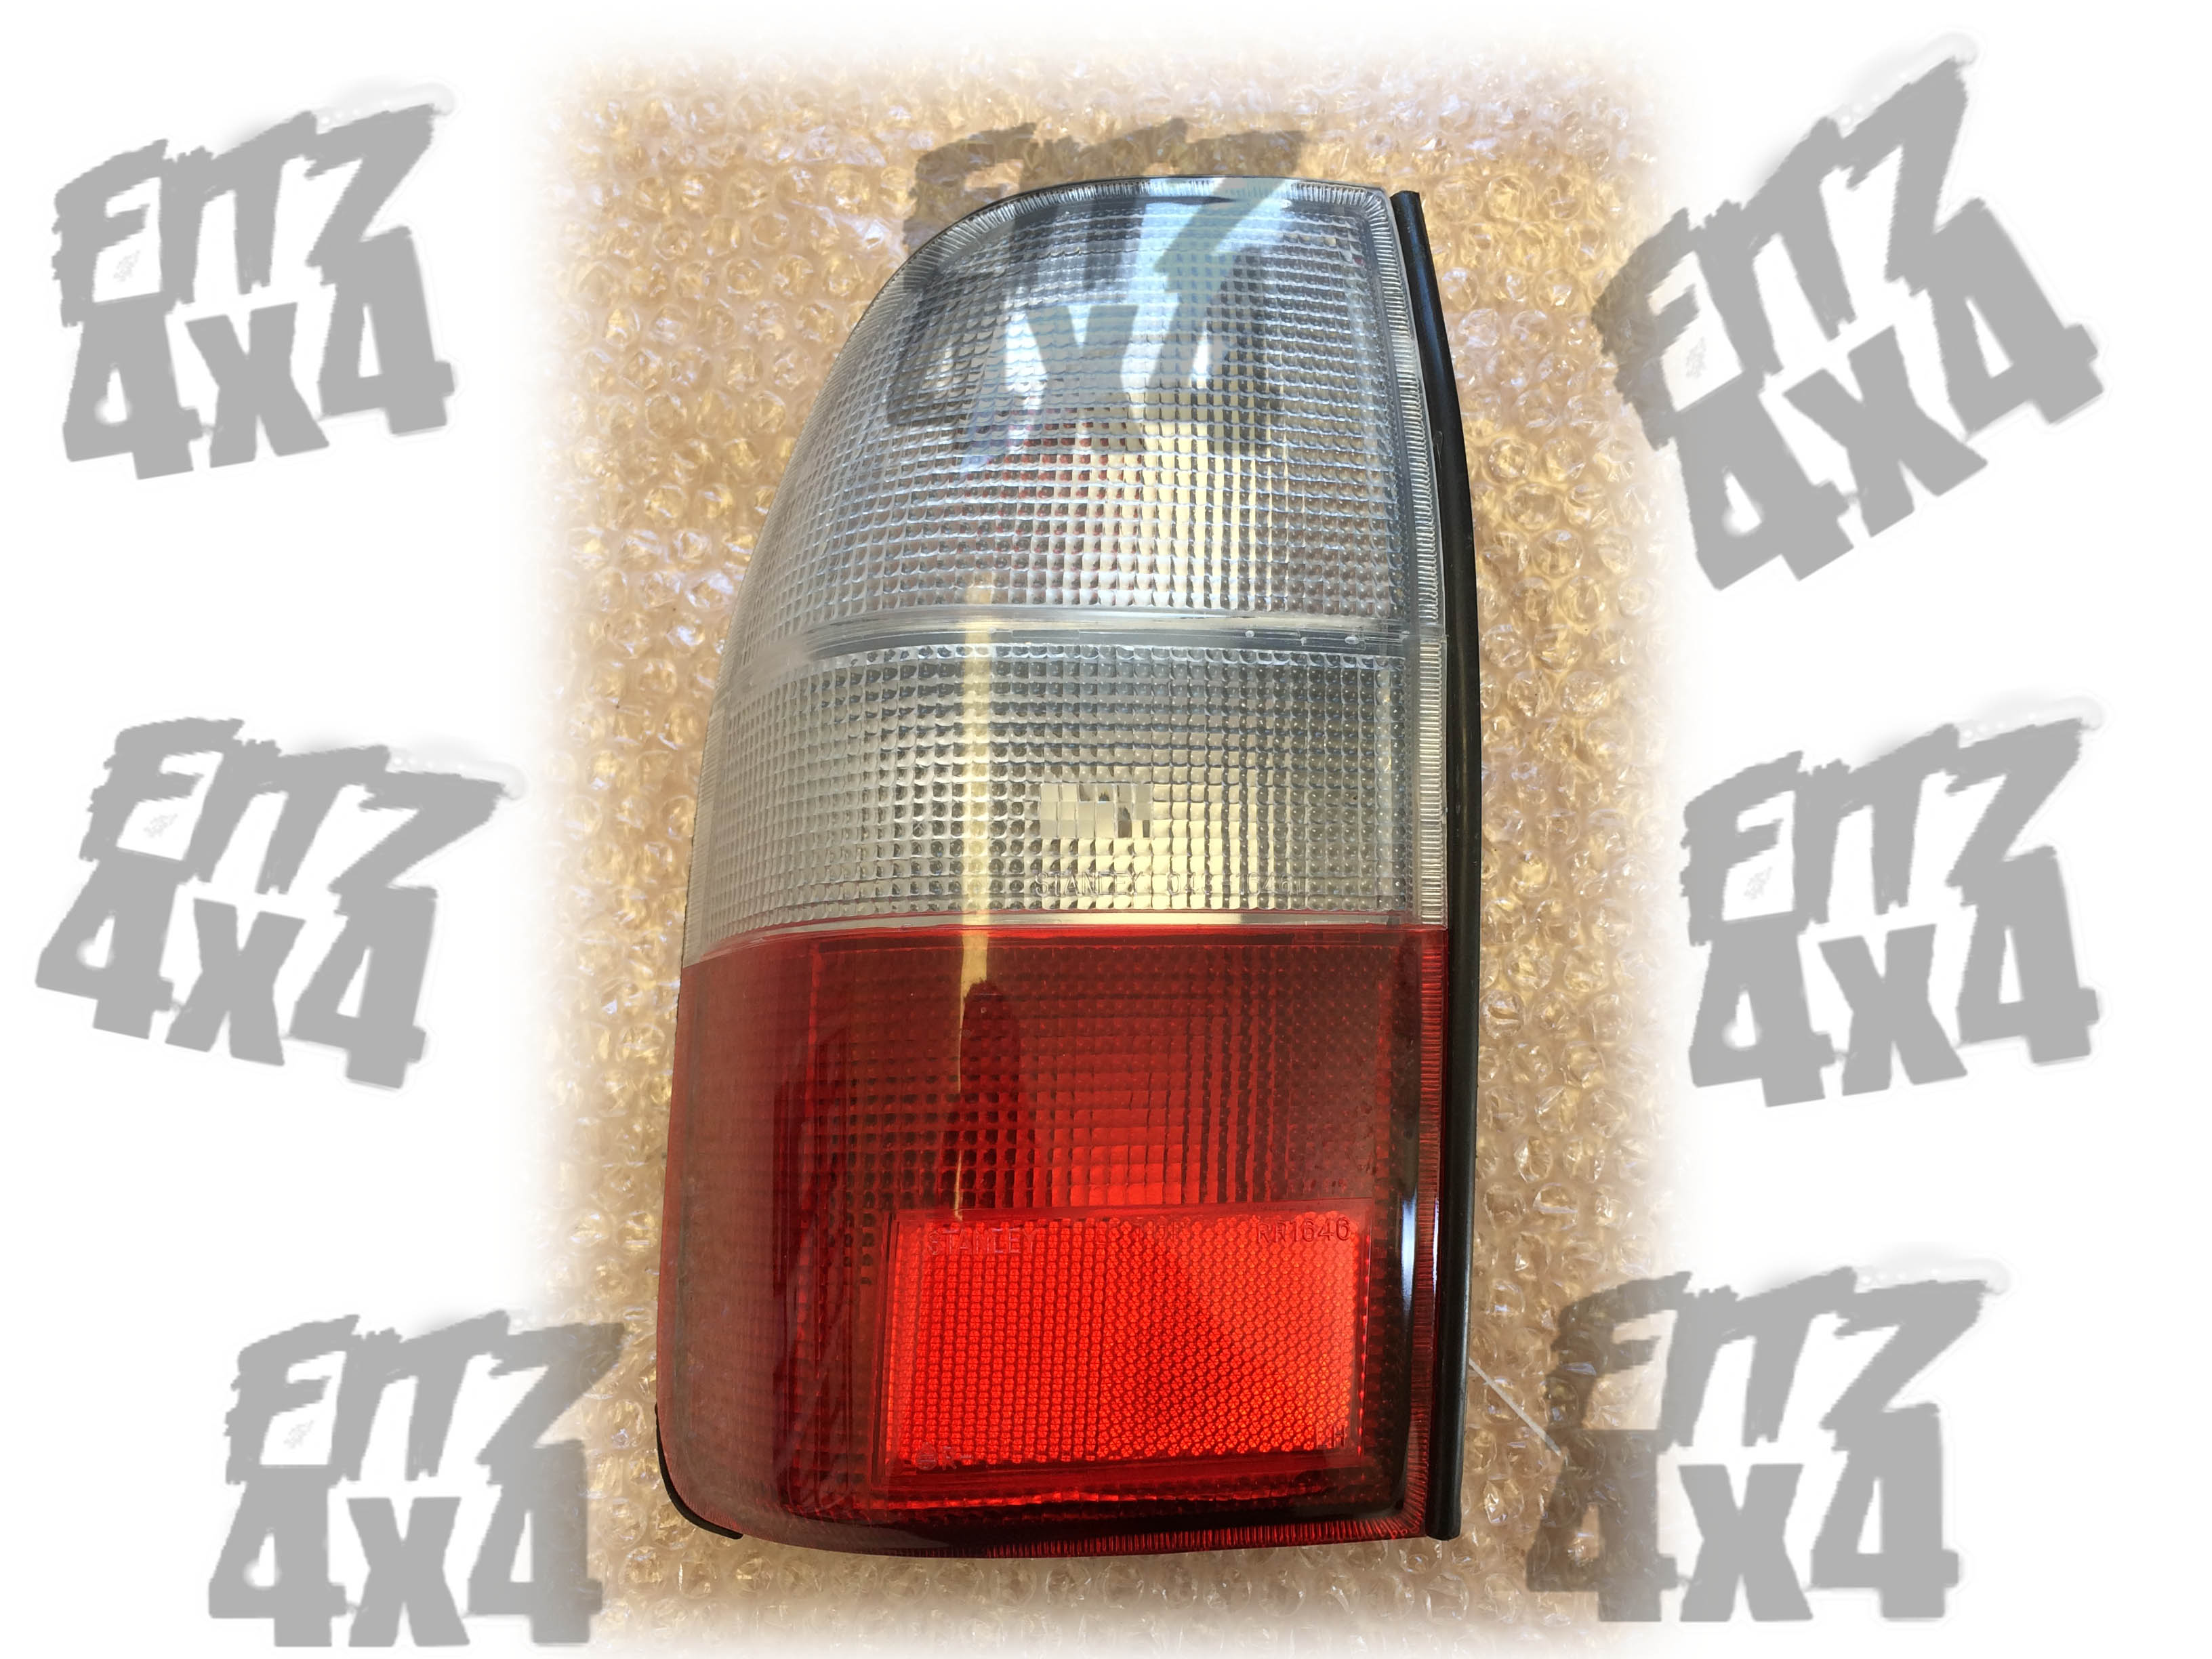 2001-2006 L200 rear left tail light